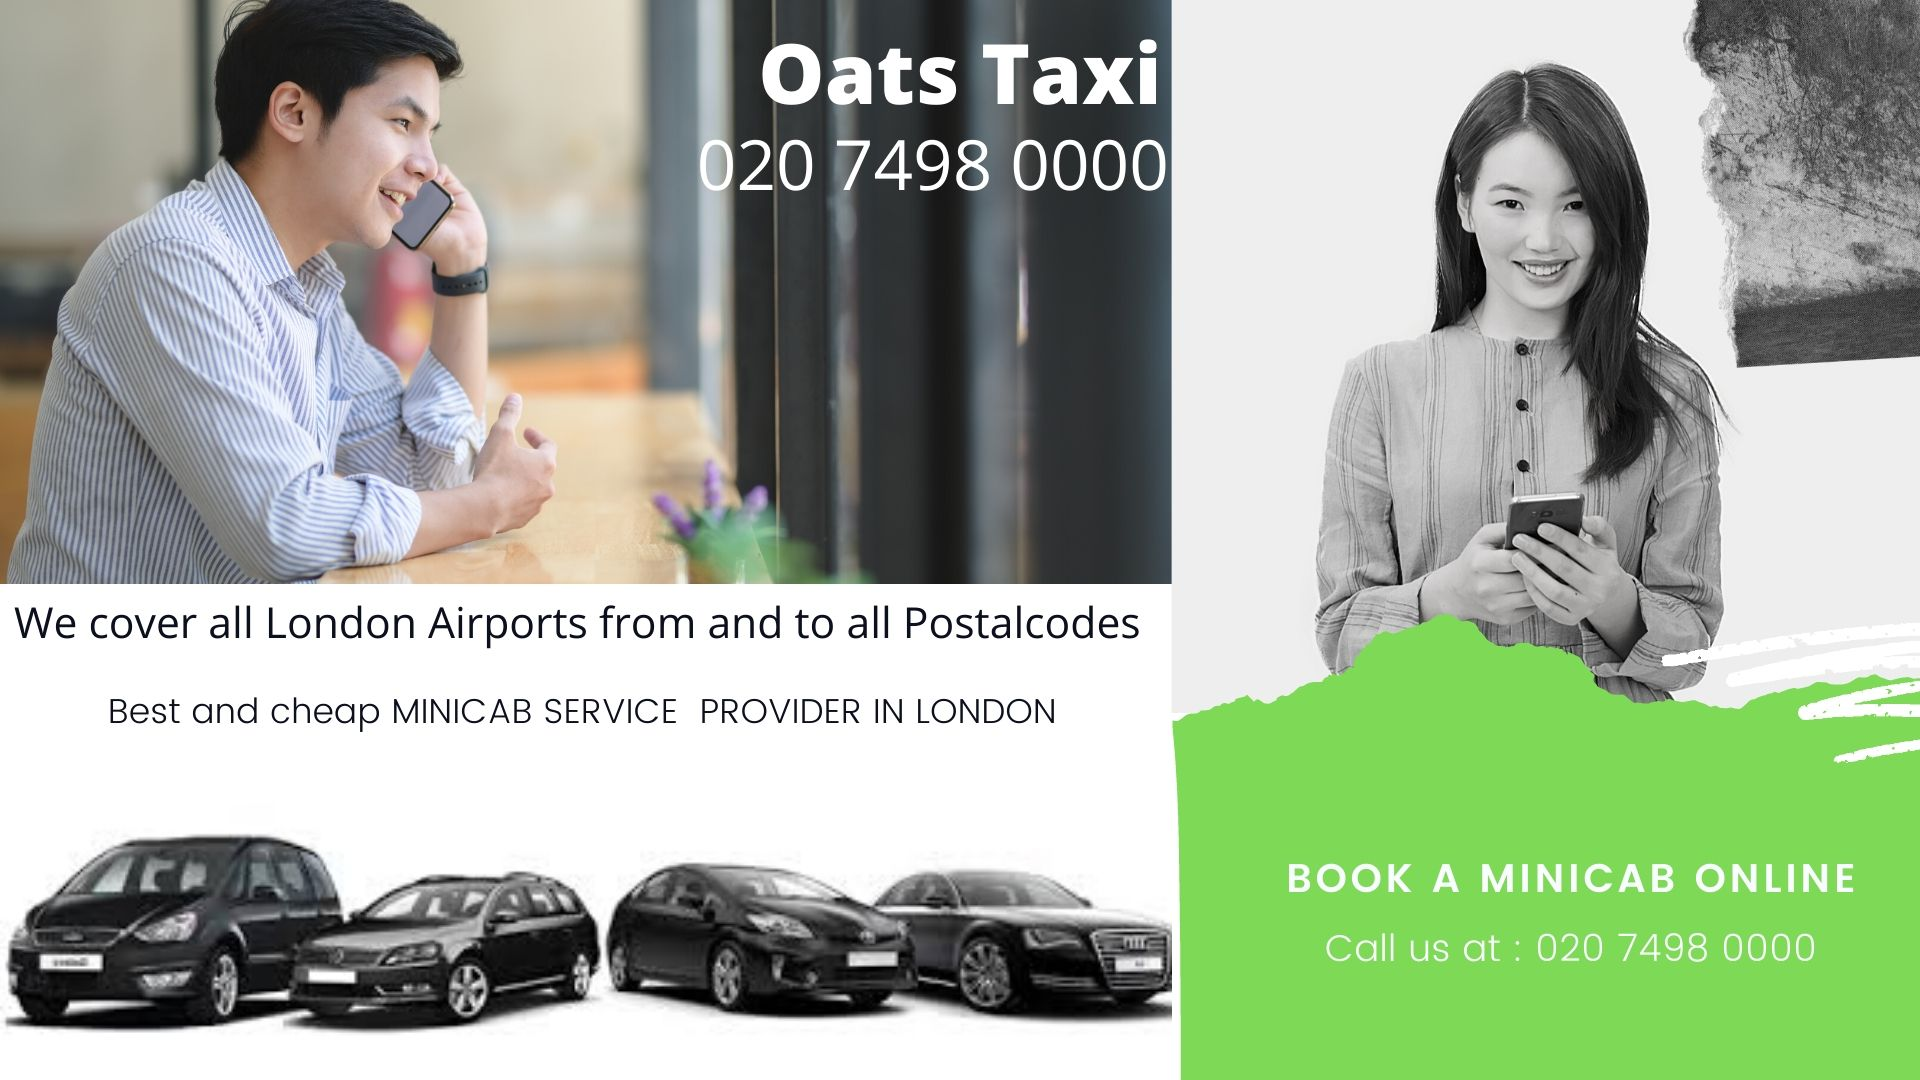 Minicab Office Near BRIDGE LANE, Battersea SW11, Minicab From Battersea SW11 To Gatwick Airport